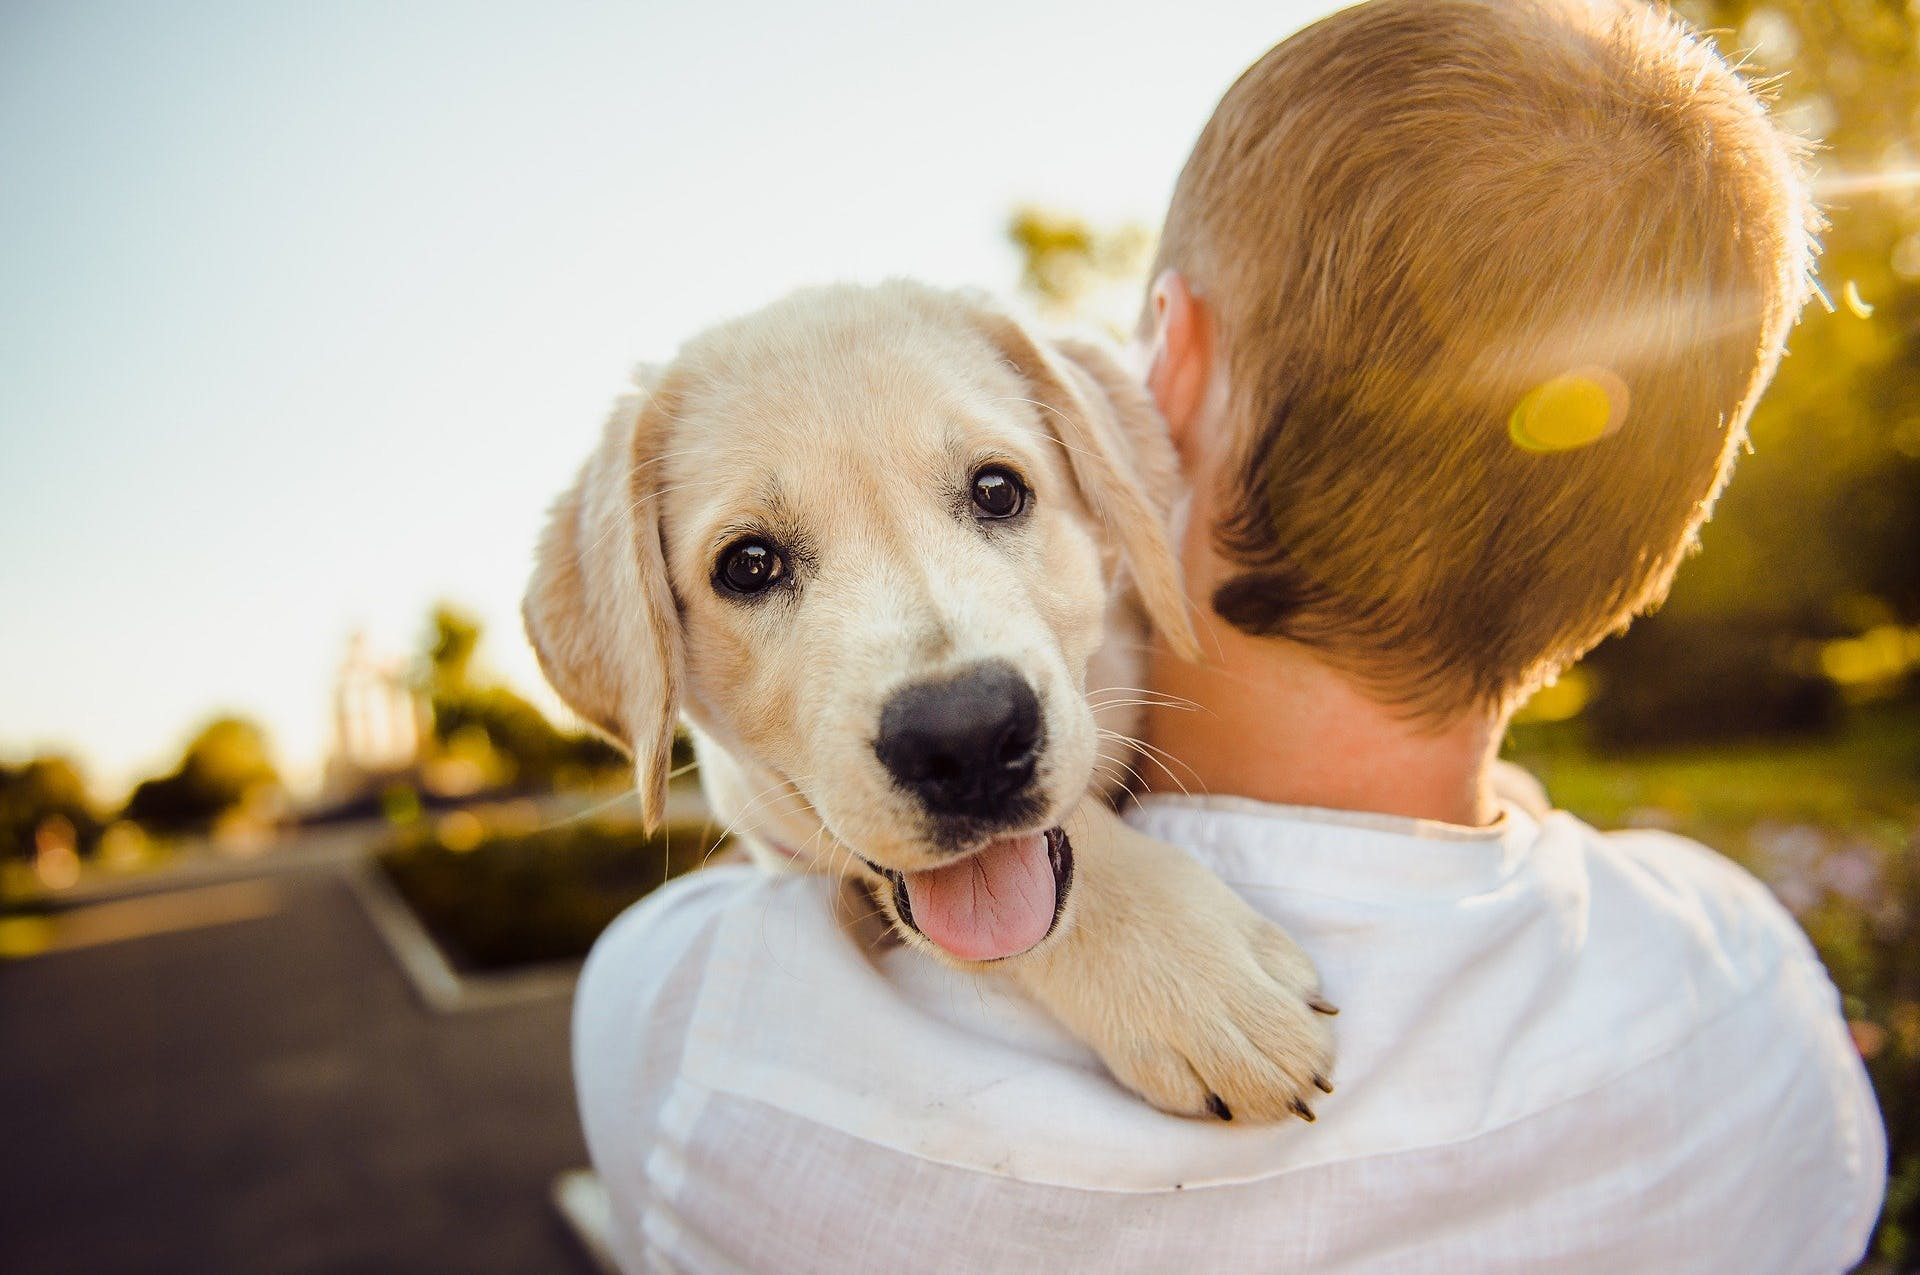 Boy carrying his dog